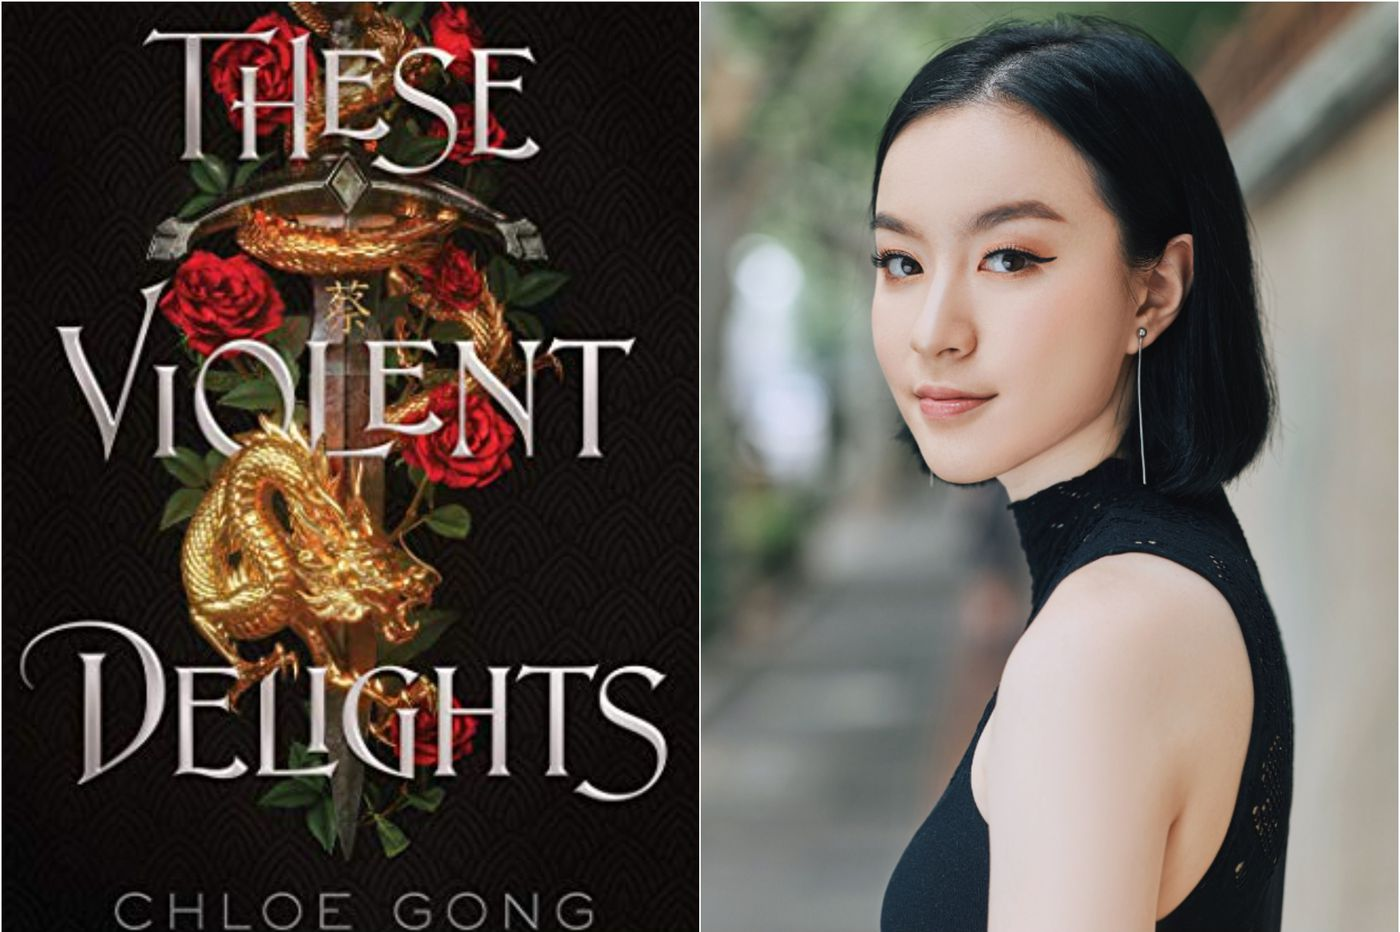 Penn senior Chloe Gong gets a 'must-read' Kirkus rating for her first novel, a cliff-hanging romance mystery